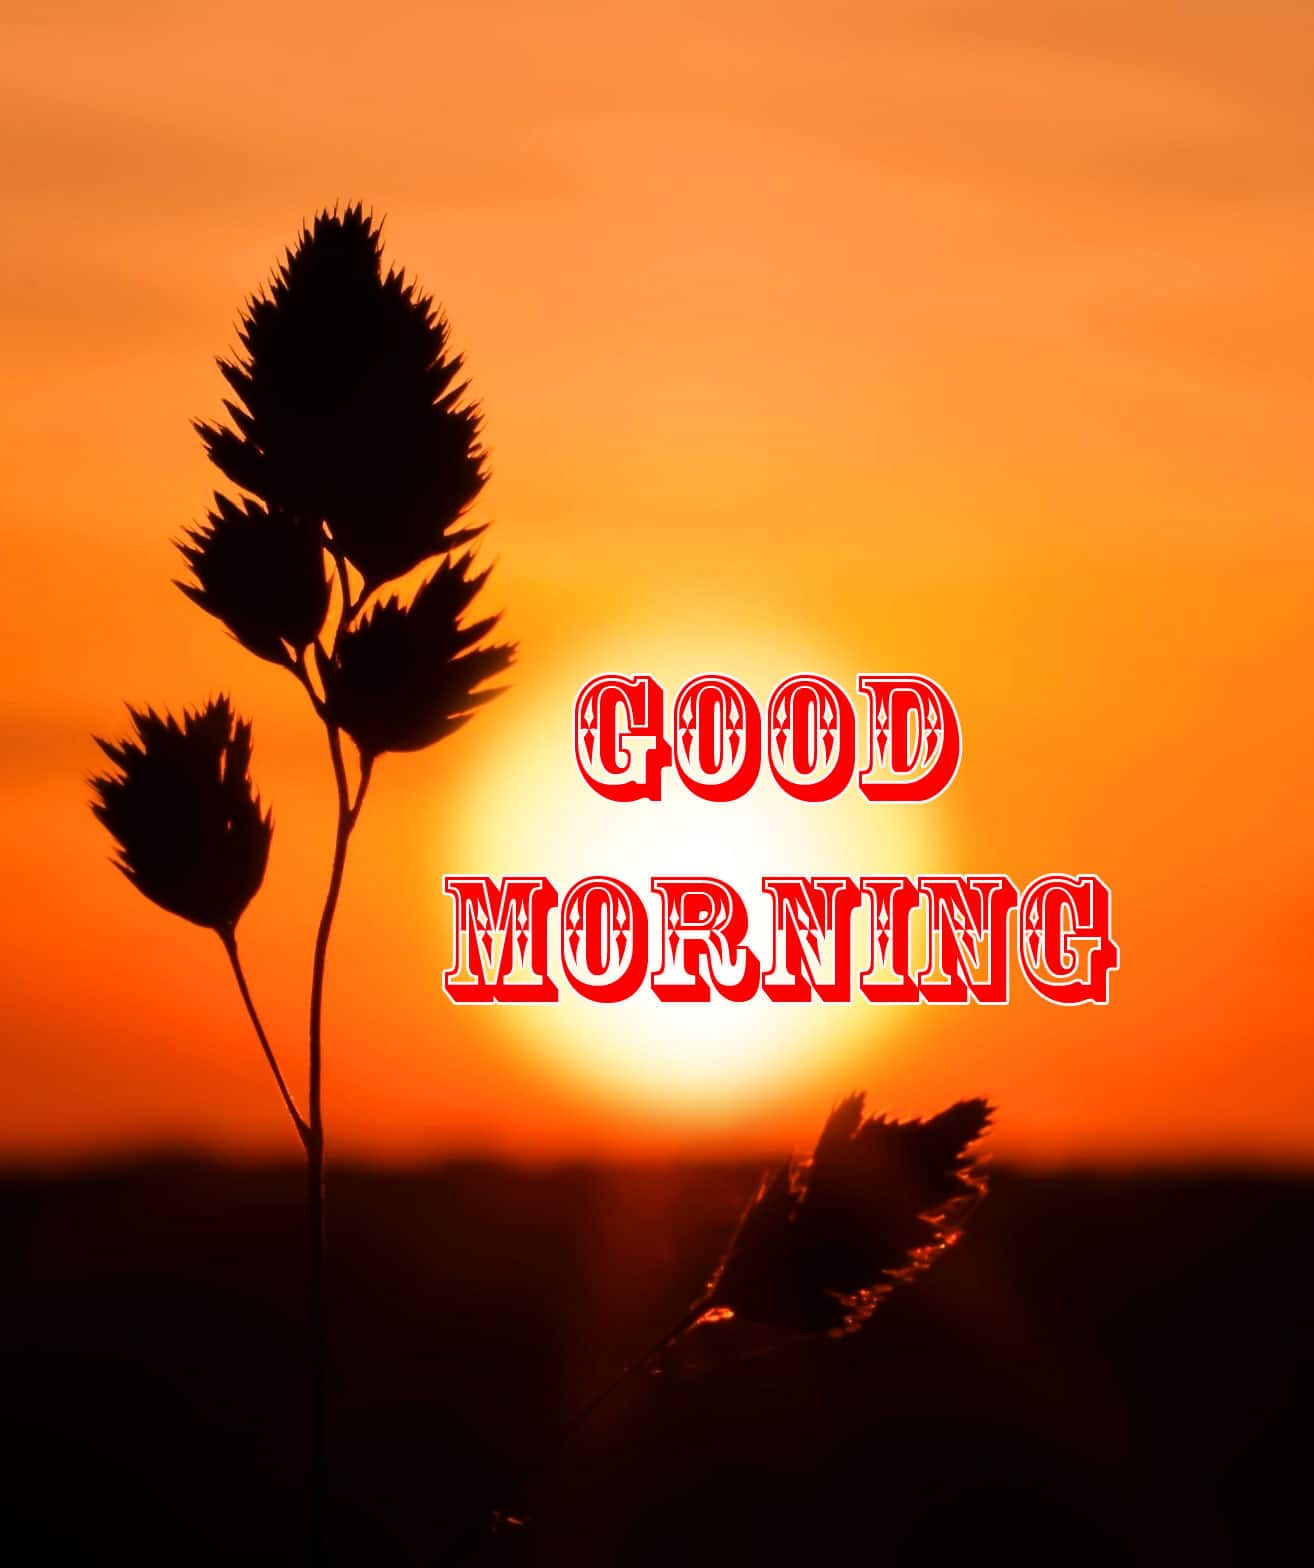 Free Top Good Morning Wishes Pics HD Download 1